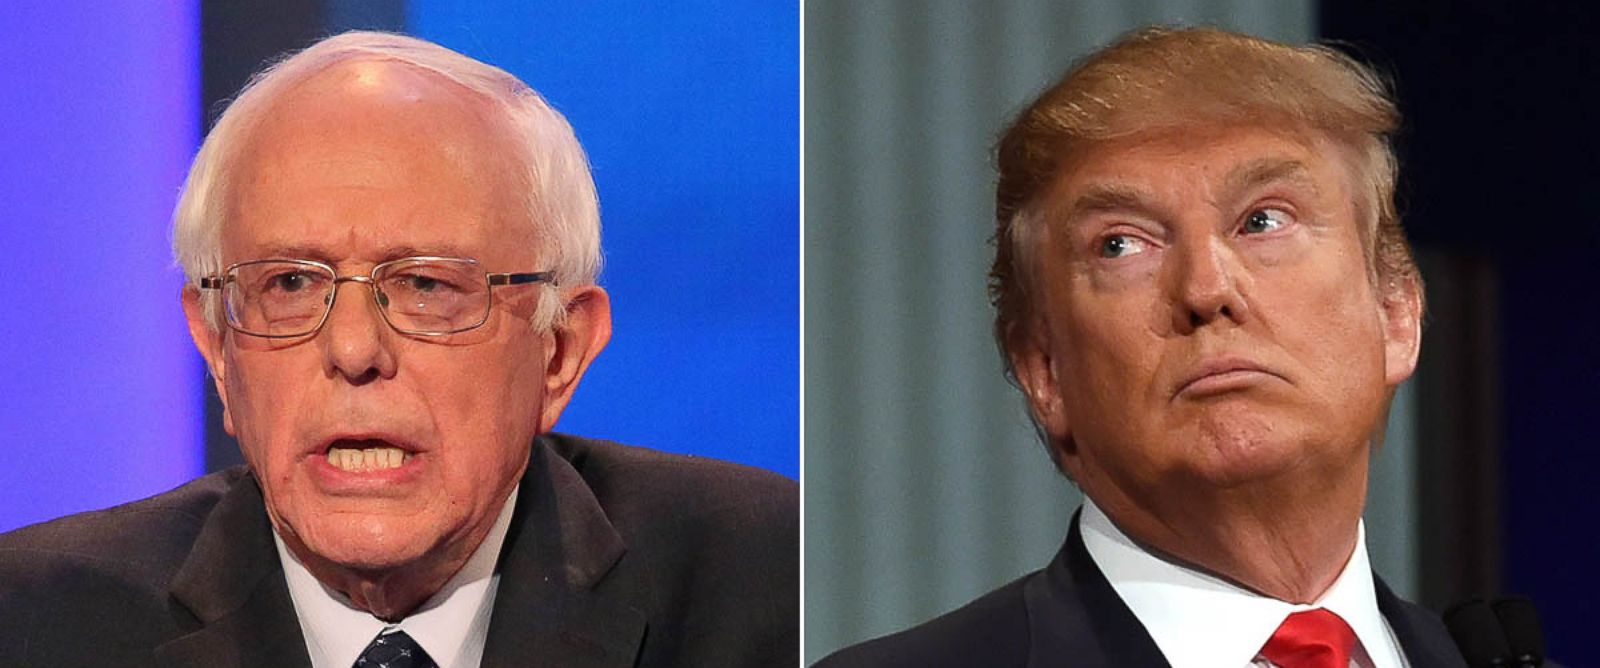 PHOTO: Democratic president candidate Bernie Sanders speaks at the debate on Dec. 19, 2015 in Manchester, N.H. Republican Presidential candidate Donald Trump participates in the Republican Presidential debate in Charleston, S.C. on Jan. 14, 2016.